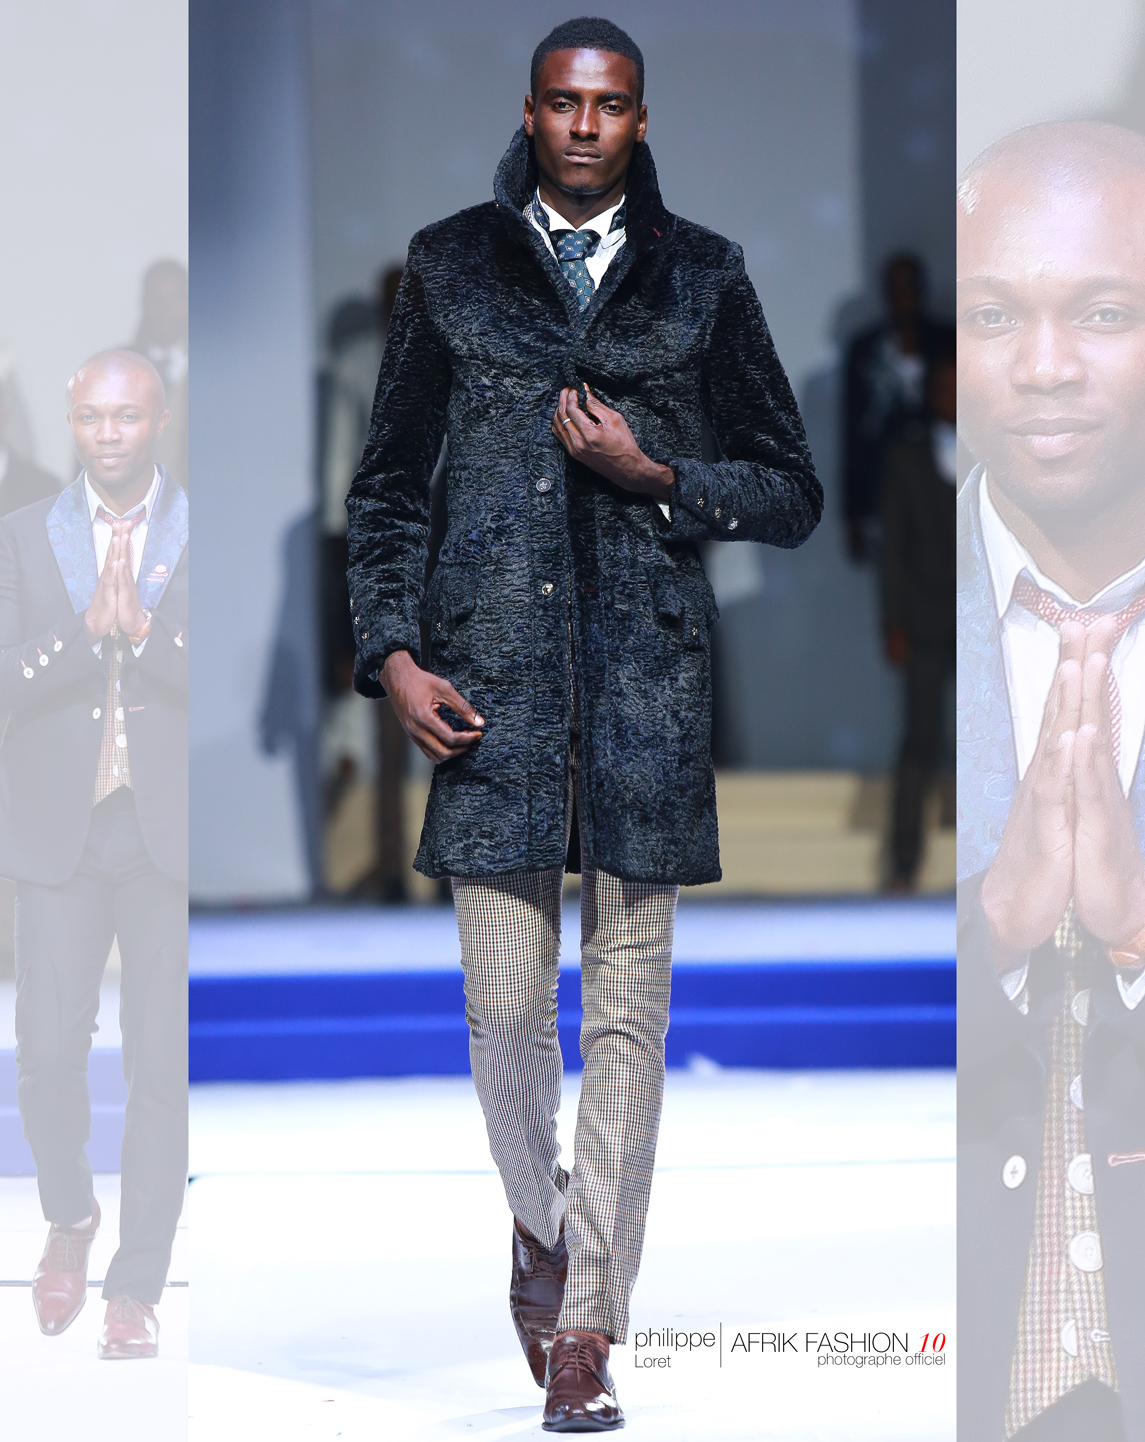 zacométi_afrikfashion_mode_costume_ismael_grah